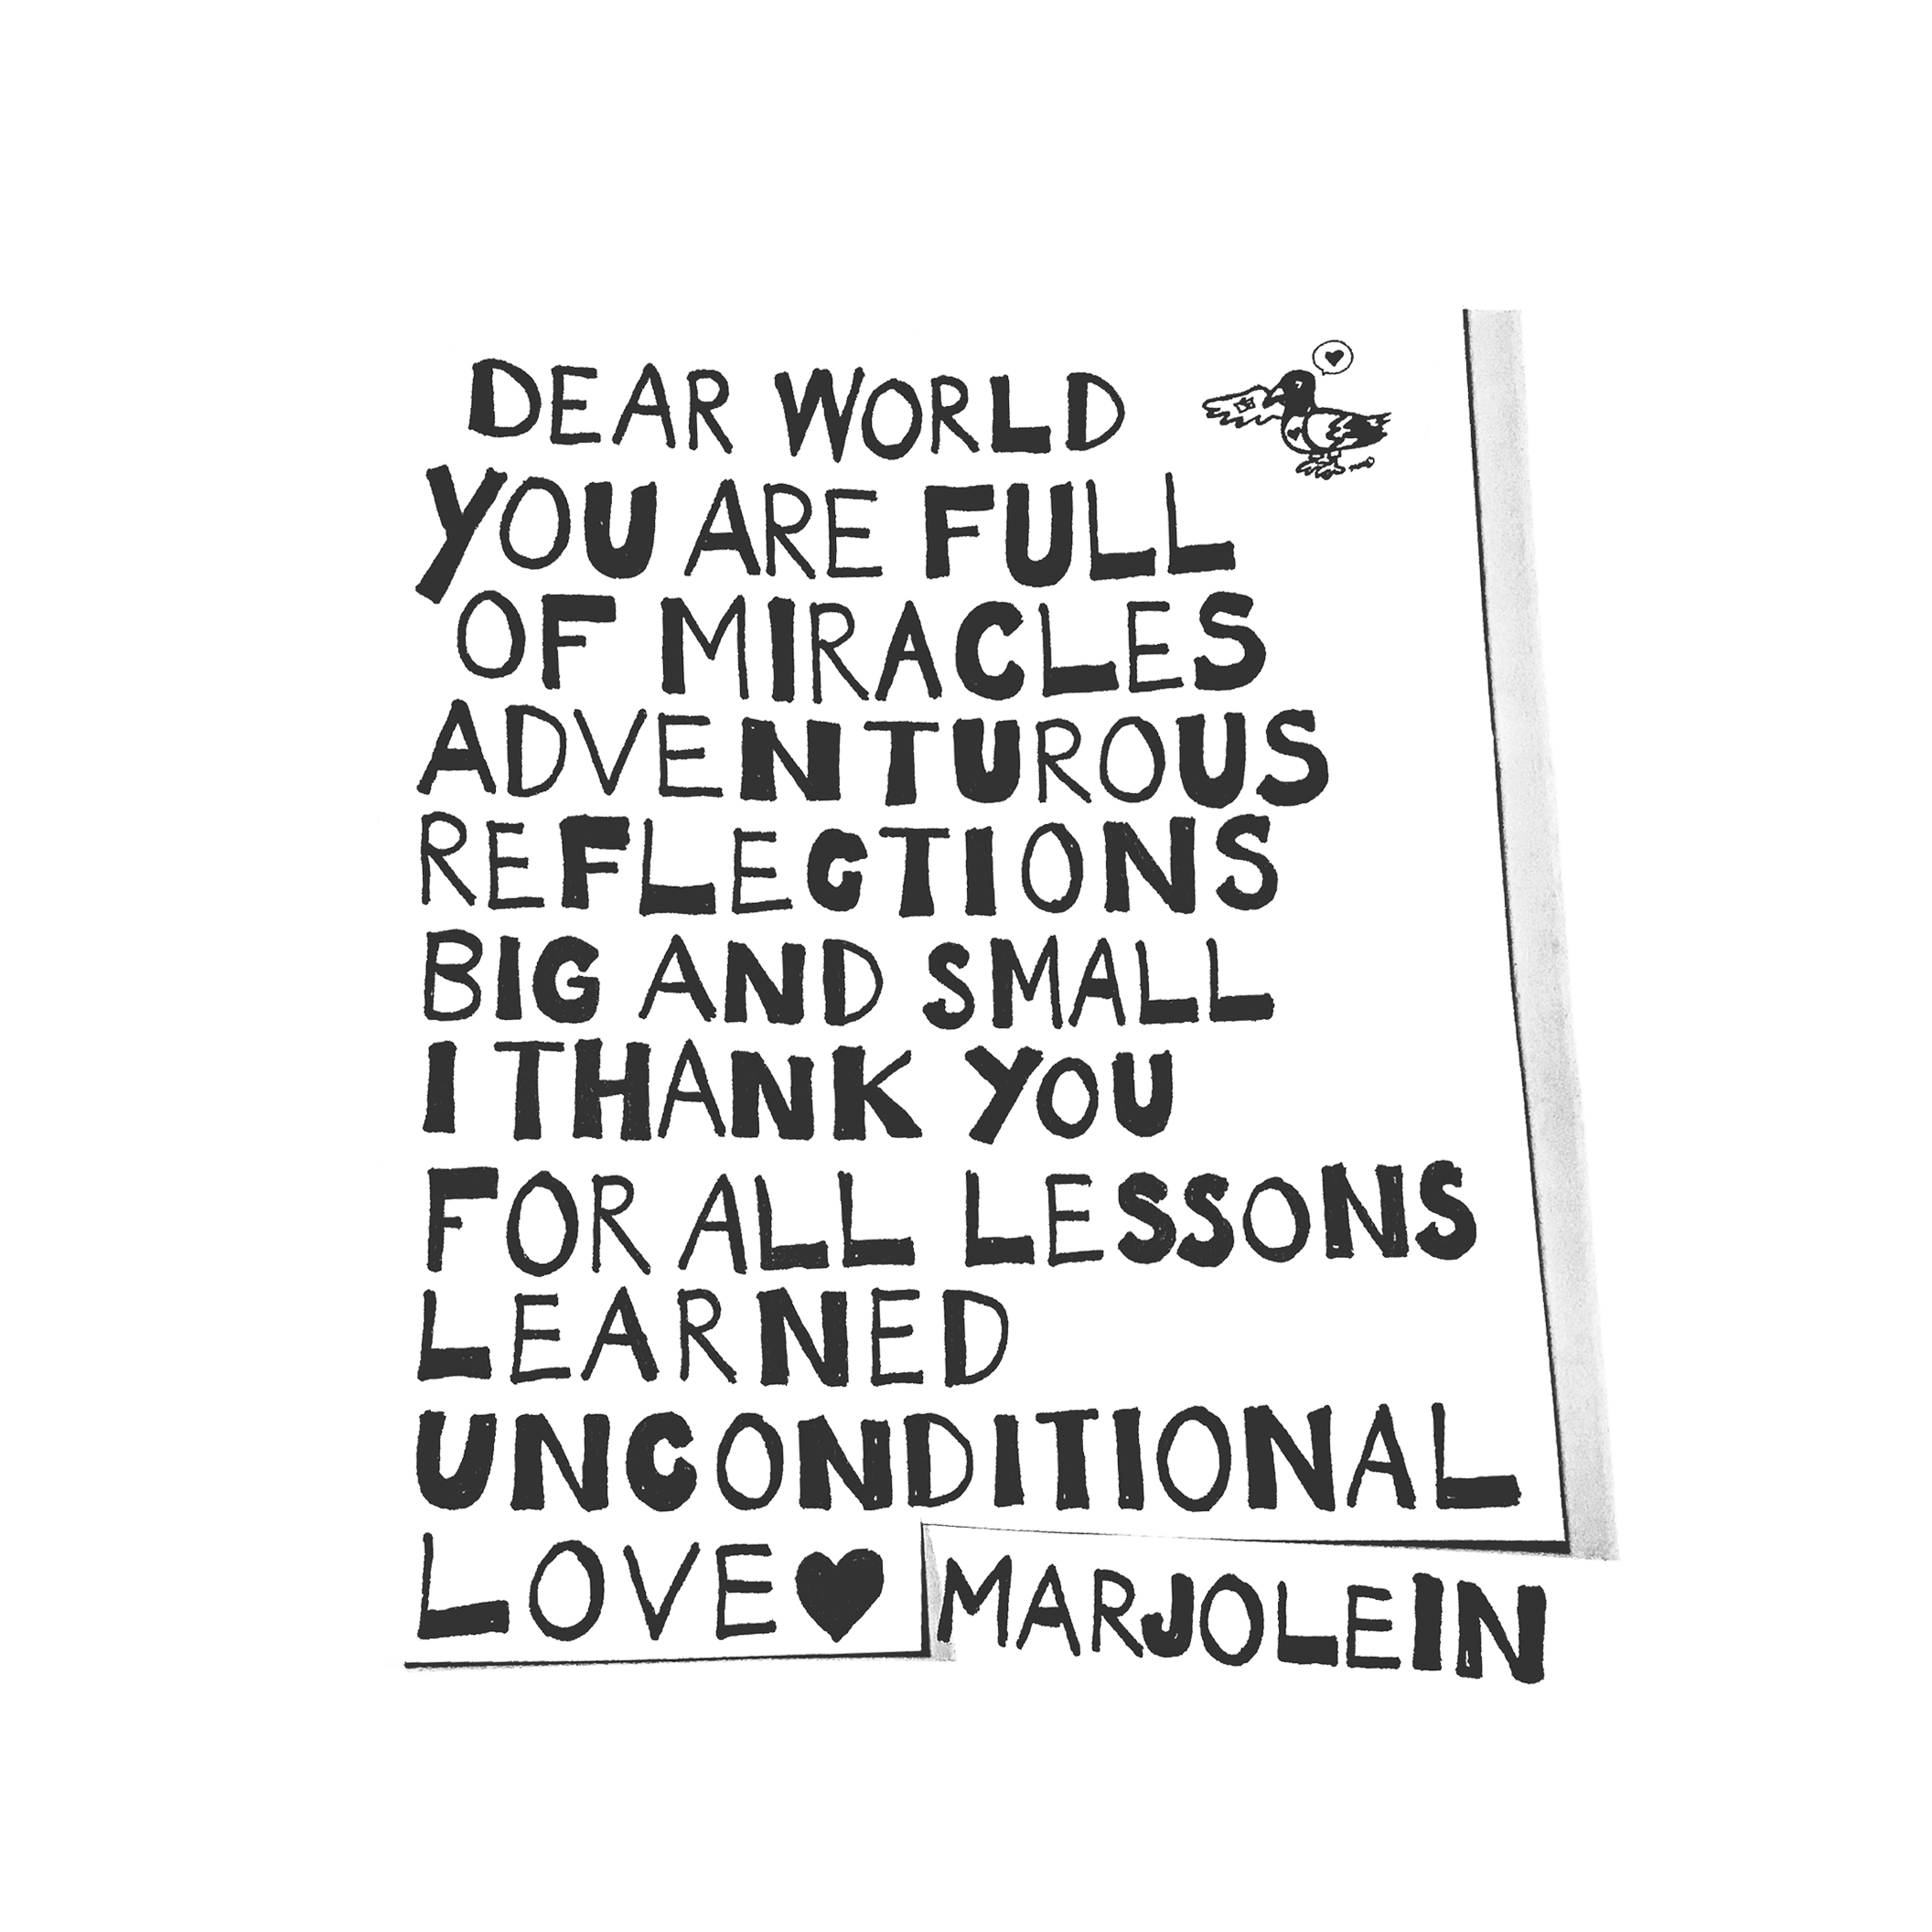 """Dear world, you are full of miracles  Adventurous reflections big and small  I thank you for all lessons learned  Unconditional love, Marjolein"""